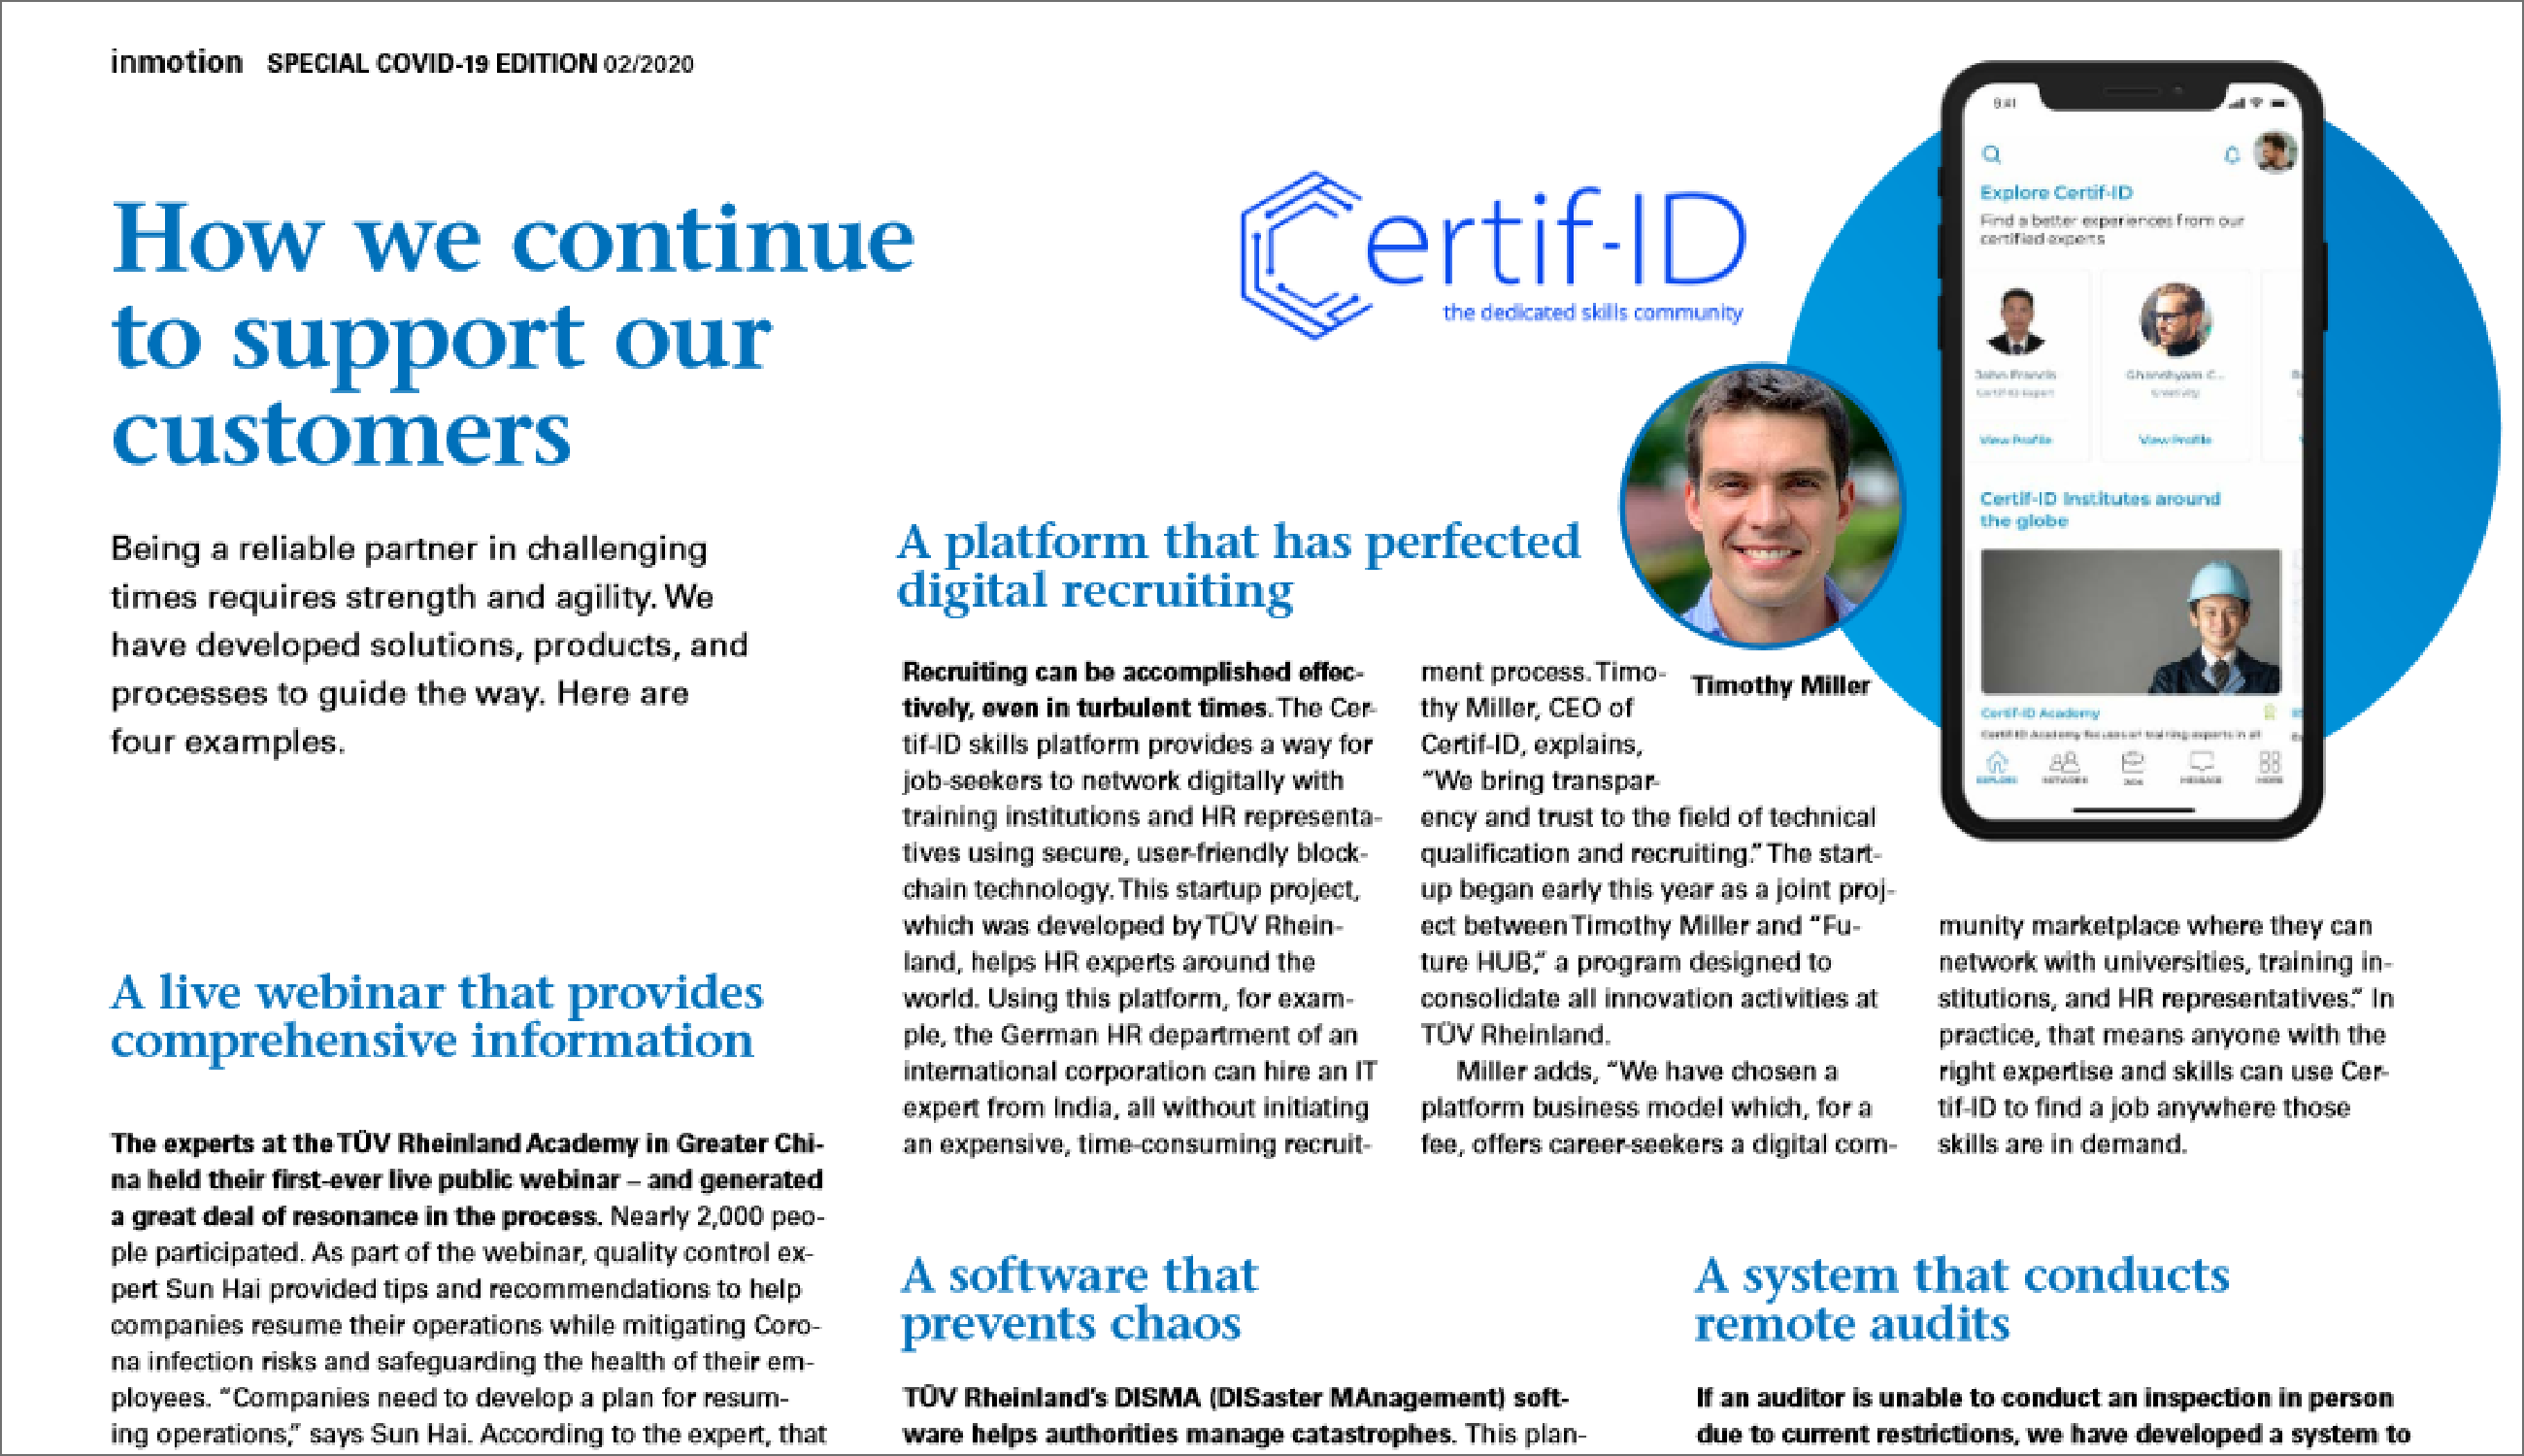 TÜV Rheinland Academy: Certif-ID Perfects Digital Recruiting